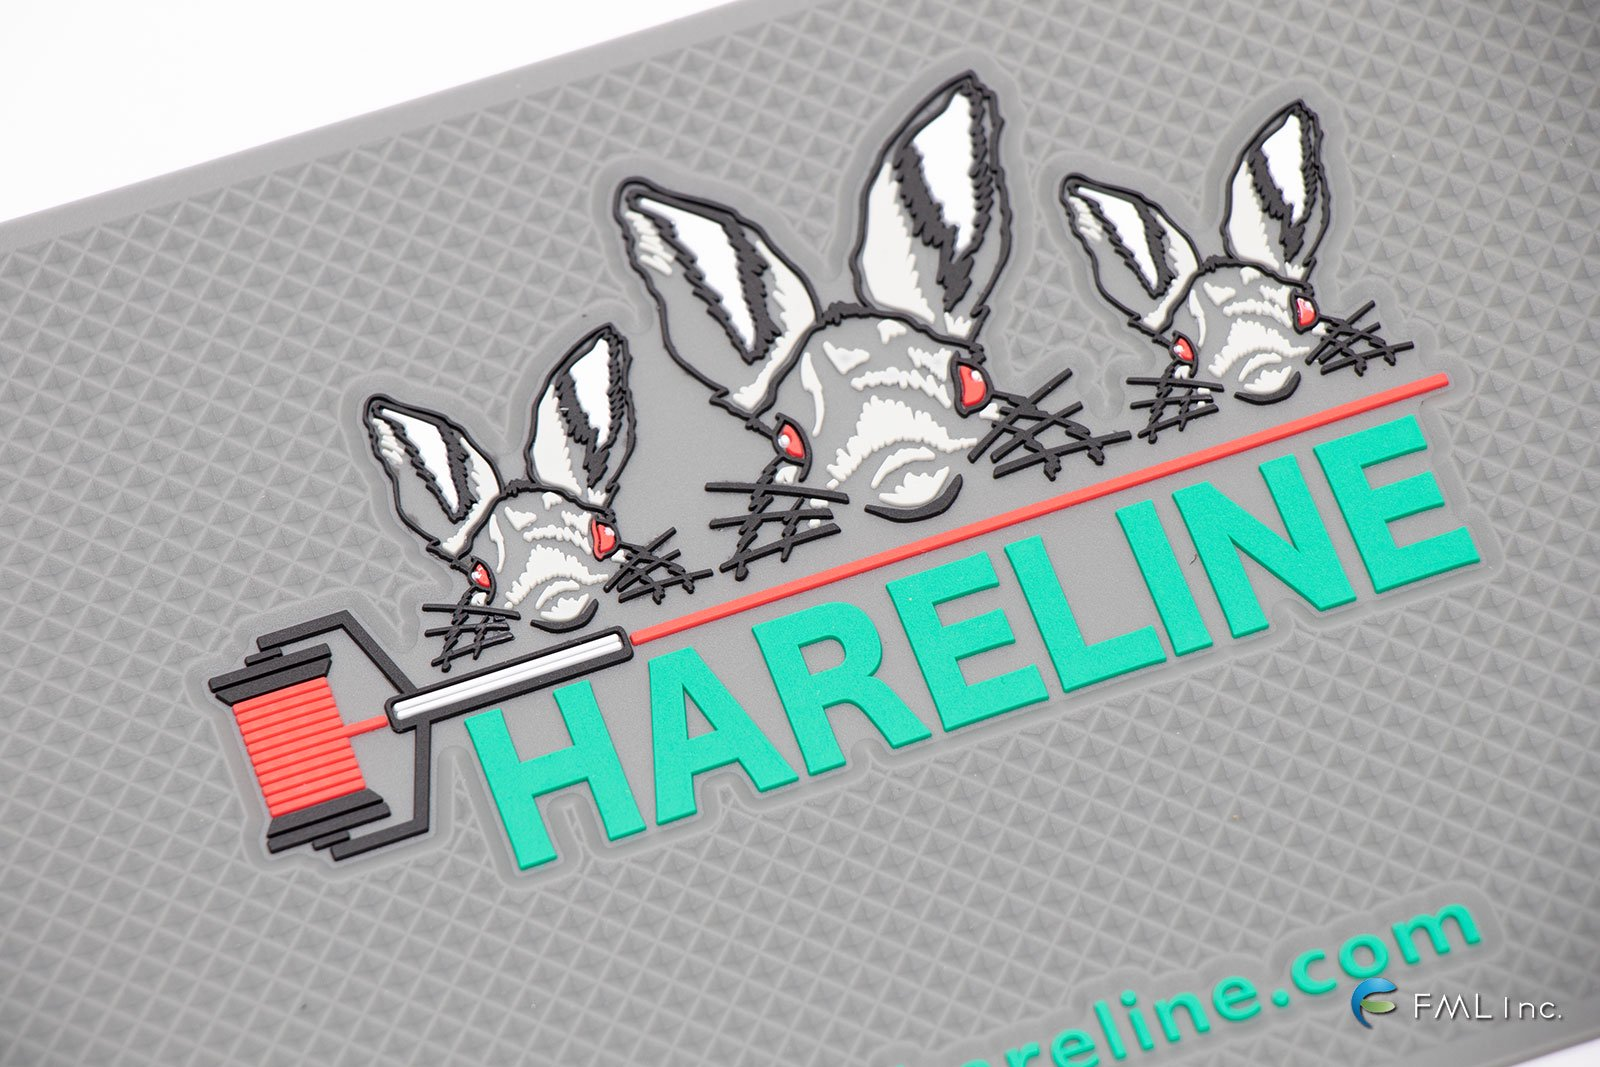 <img class='new_mark_img1' src='https://img.shop-pro.jp/img/new/icons5.gif' style='border:none;display:inline;margin:0px;padding:0px;width:auto;' />HARELINE Silicone Bead Pad (HBP)